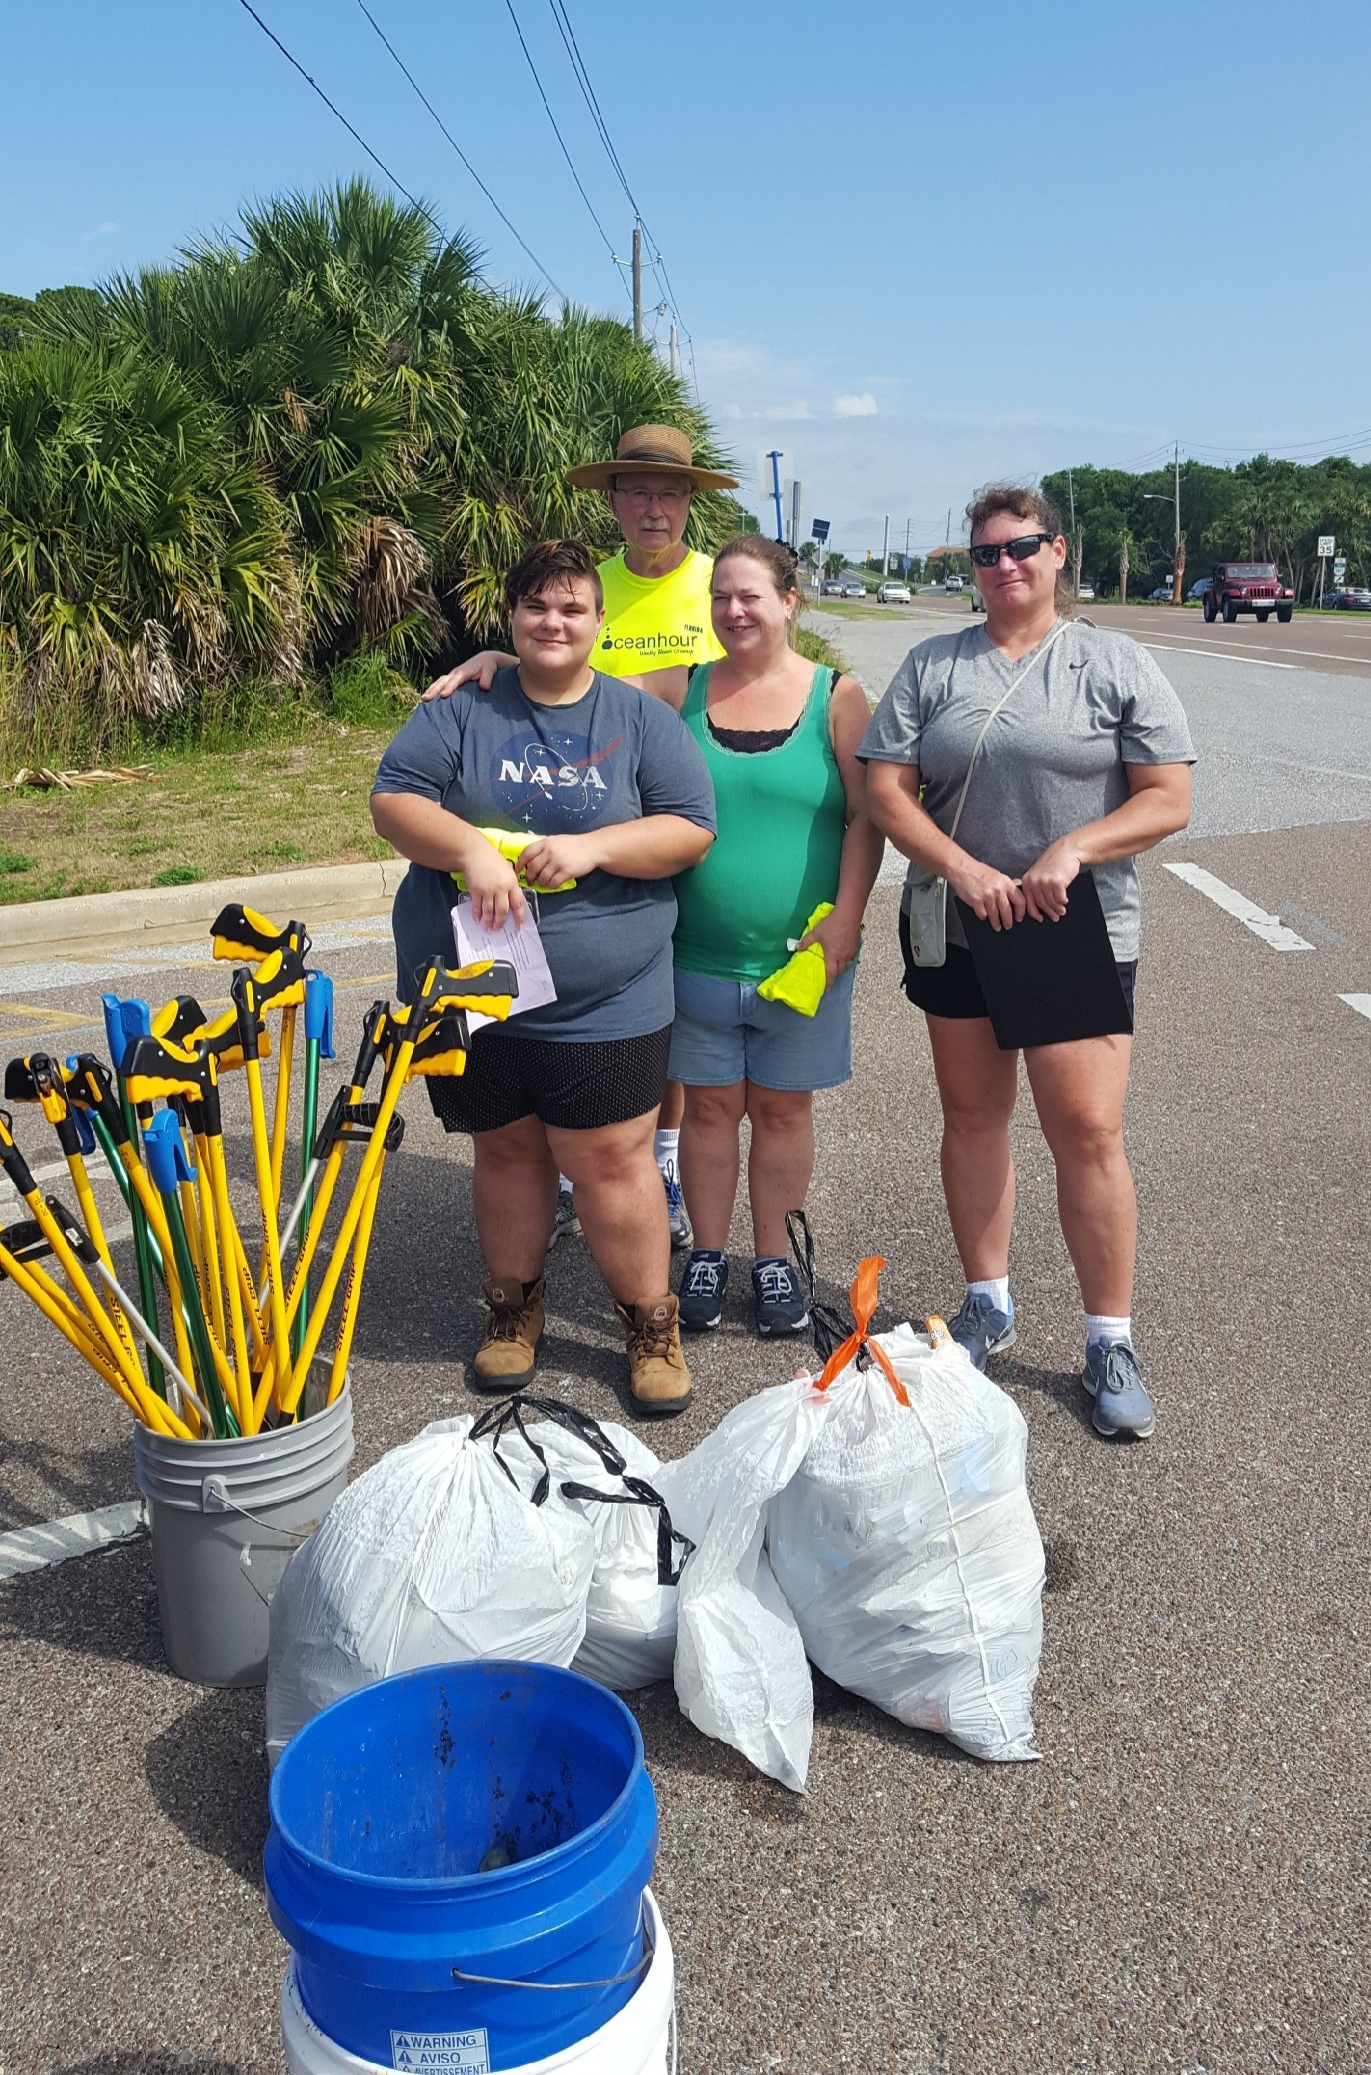 - At Naval Live Oaks 10 volunteers picked up 25 lbs, 24 lbs at the north end of Bob Sikes bridge and 105 lbs at the south end